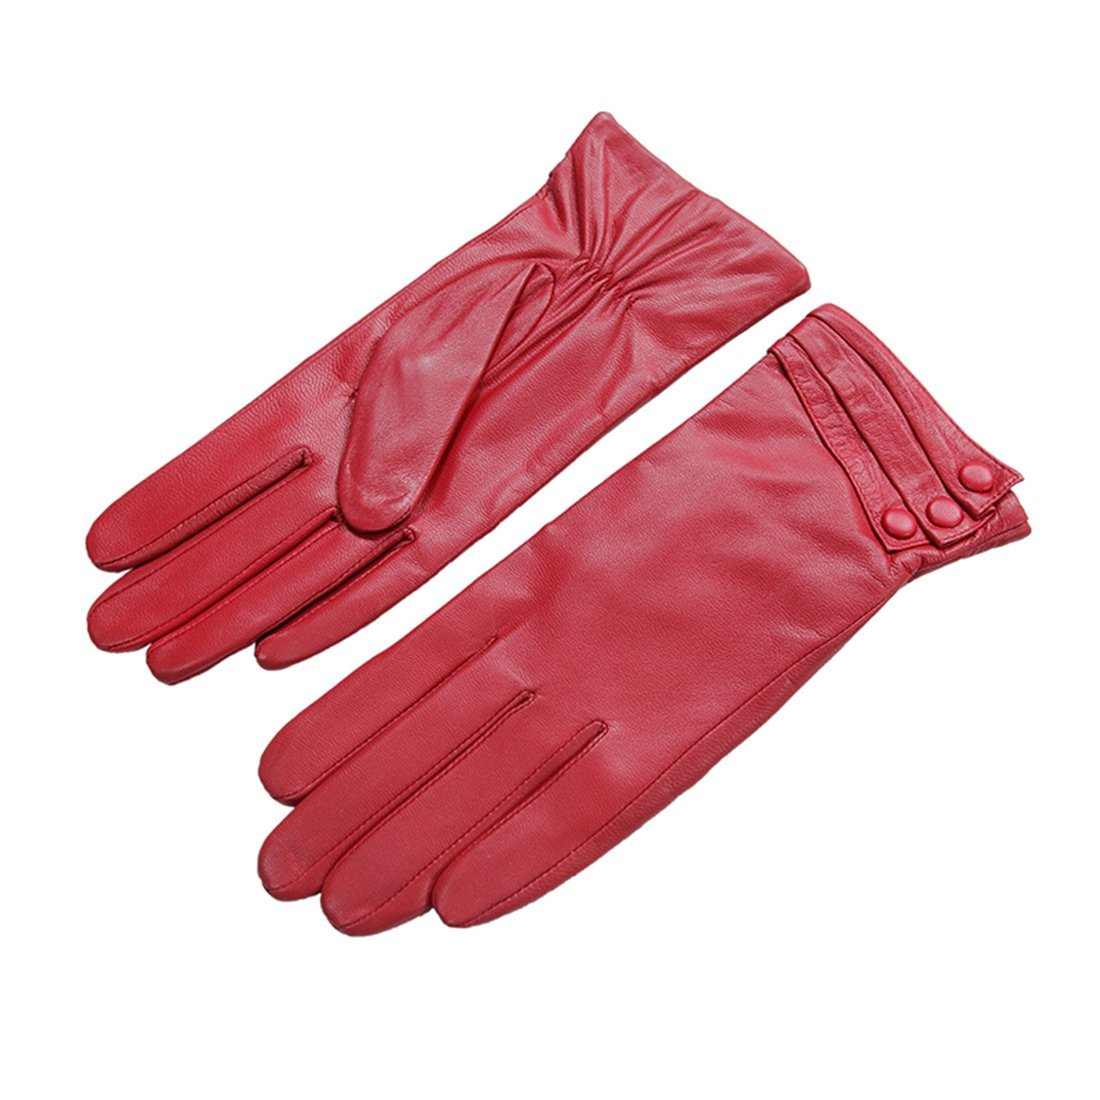 Nappaglo Nappa Leather Gloves Warm Lining Winter Button Decoration Imported Leather Lambskin Gloves for Women (L, Red)